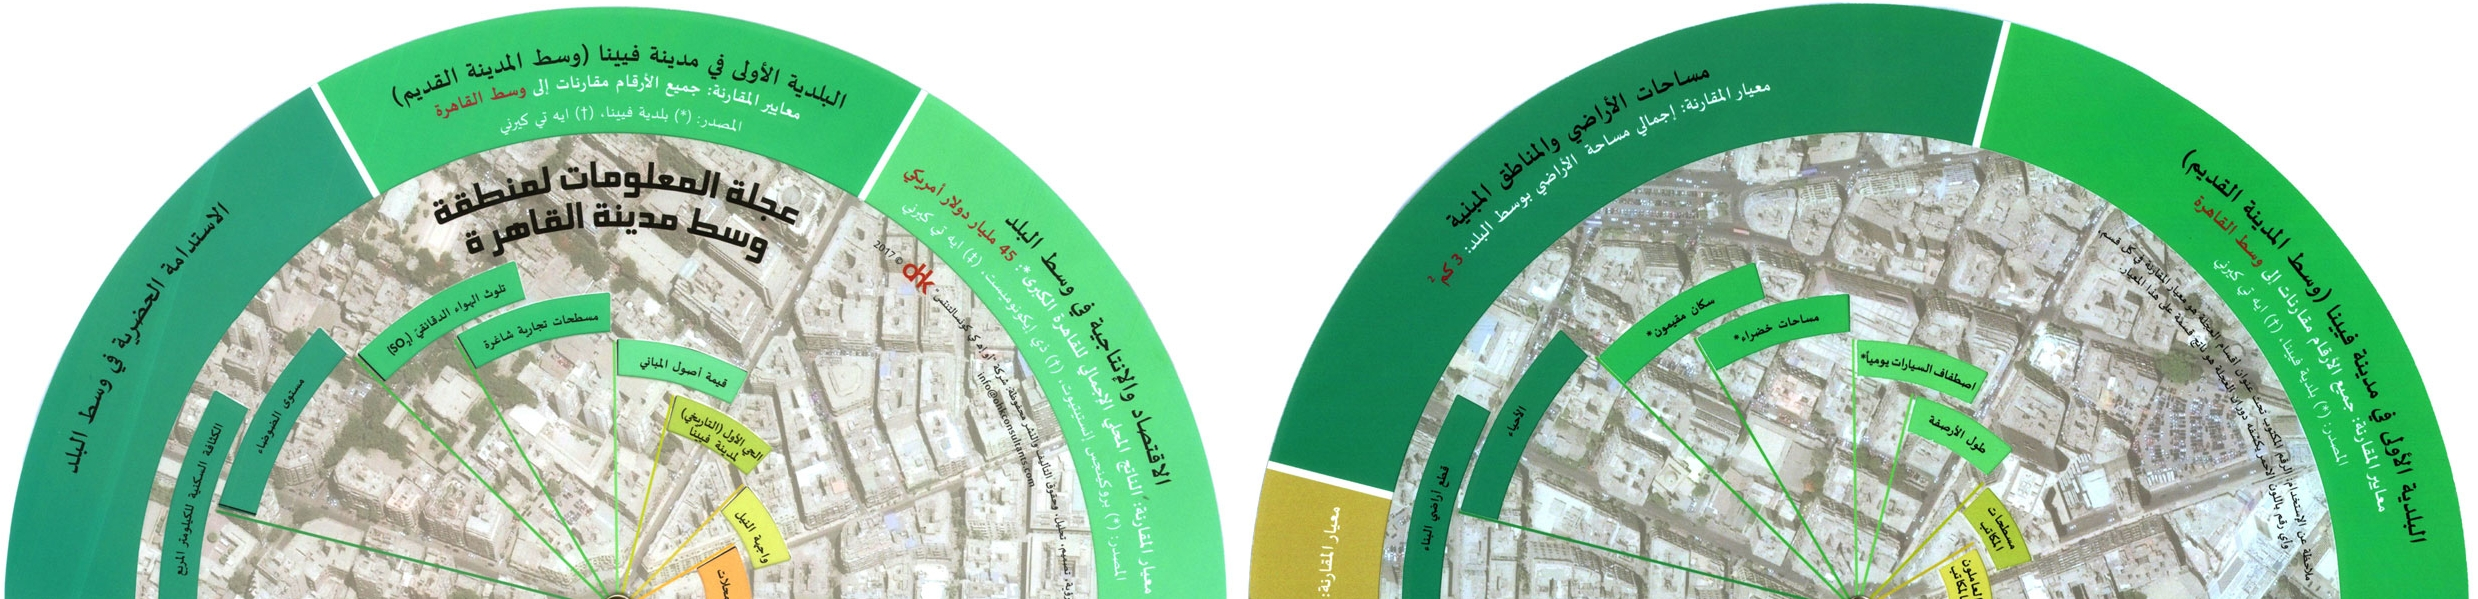 Downtown Cairo Infowheel